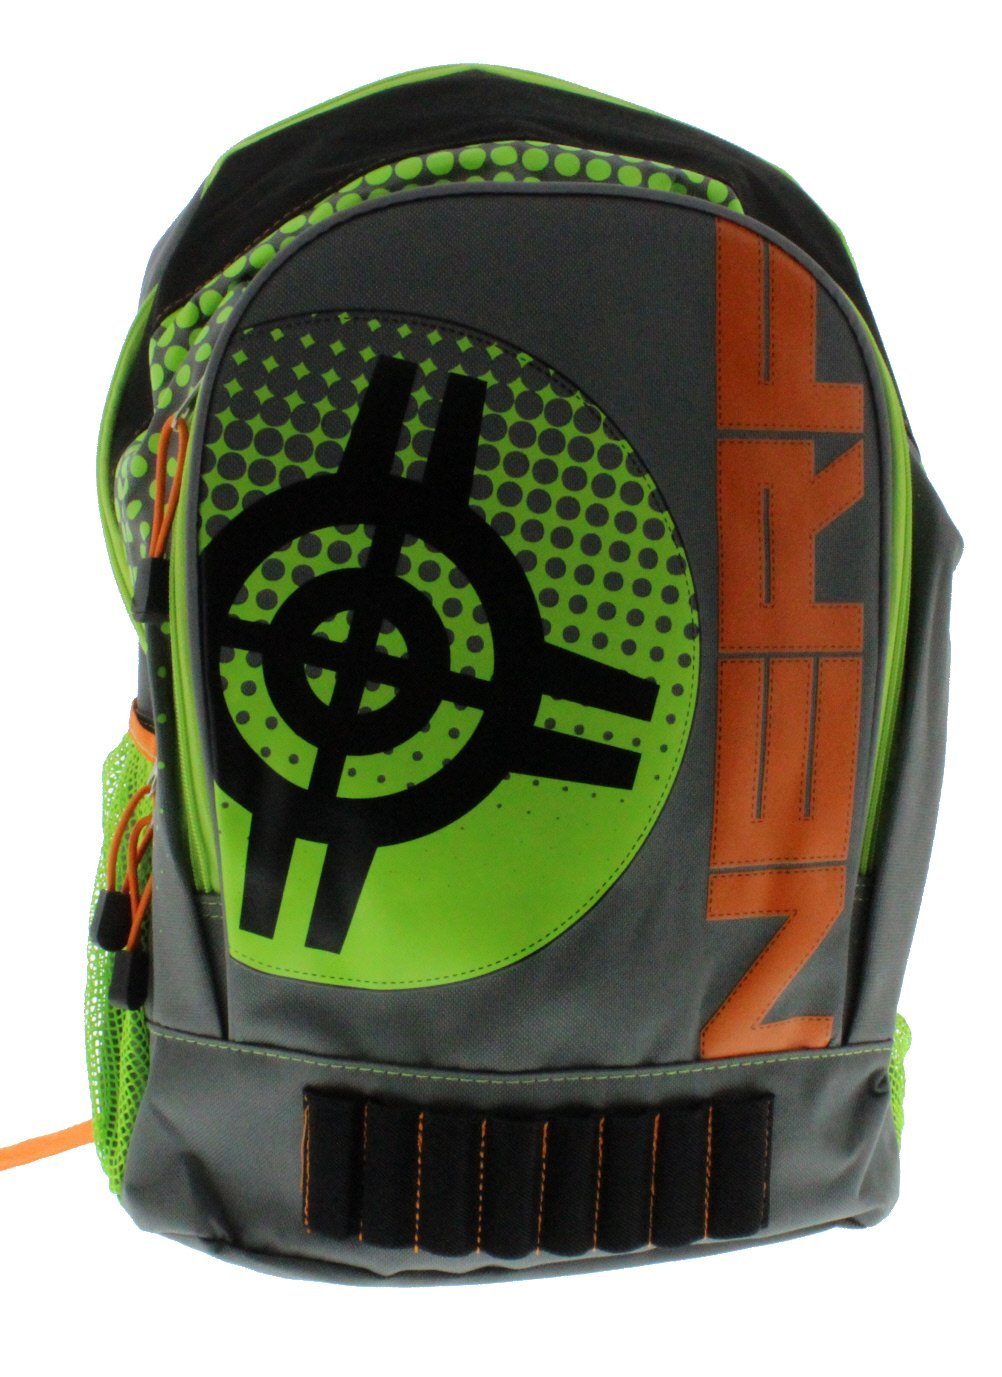 Nerf Stay on Target 16-inch Backpack - Green & Orange